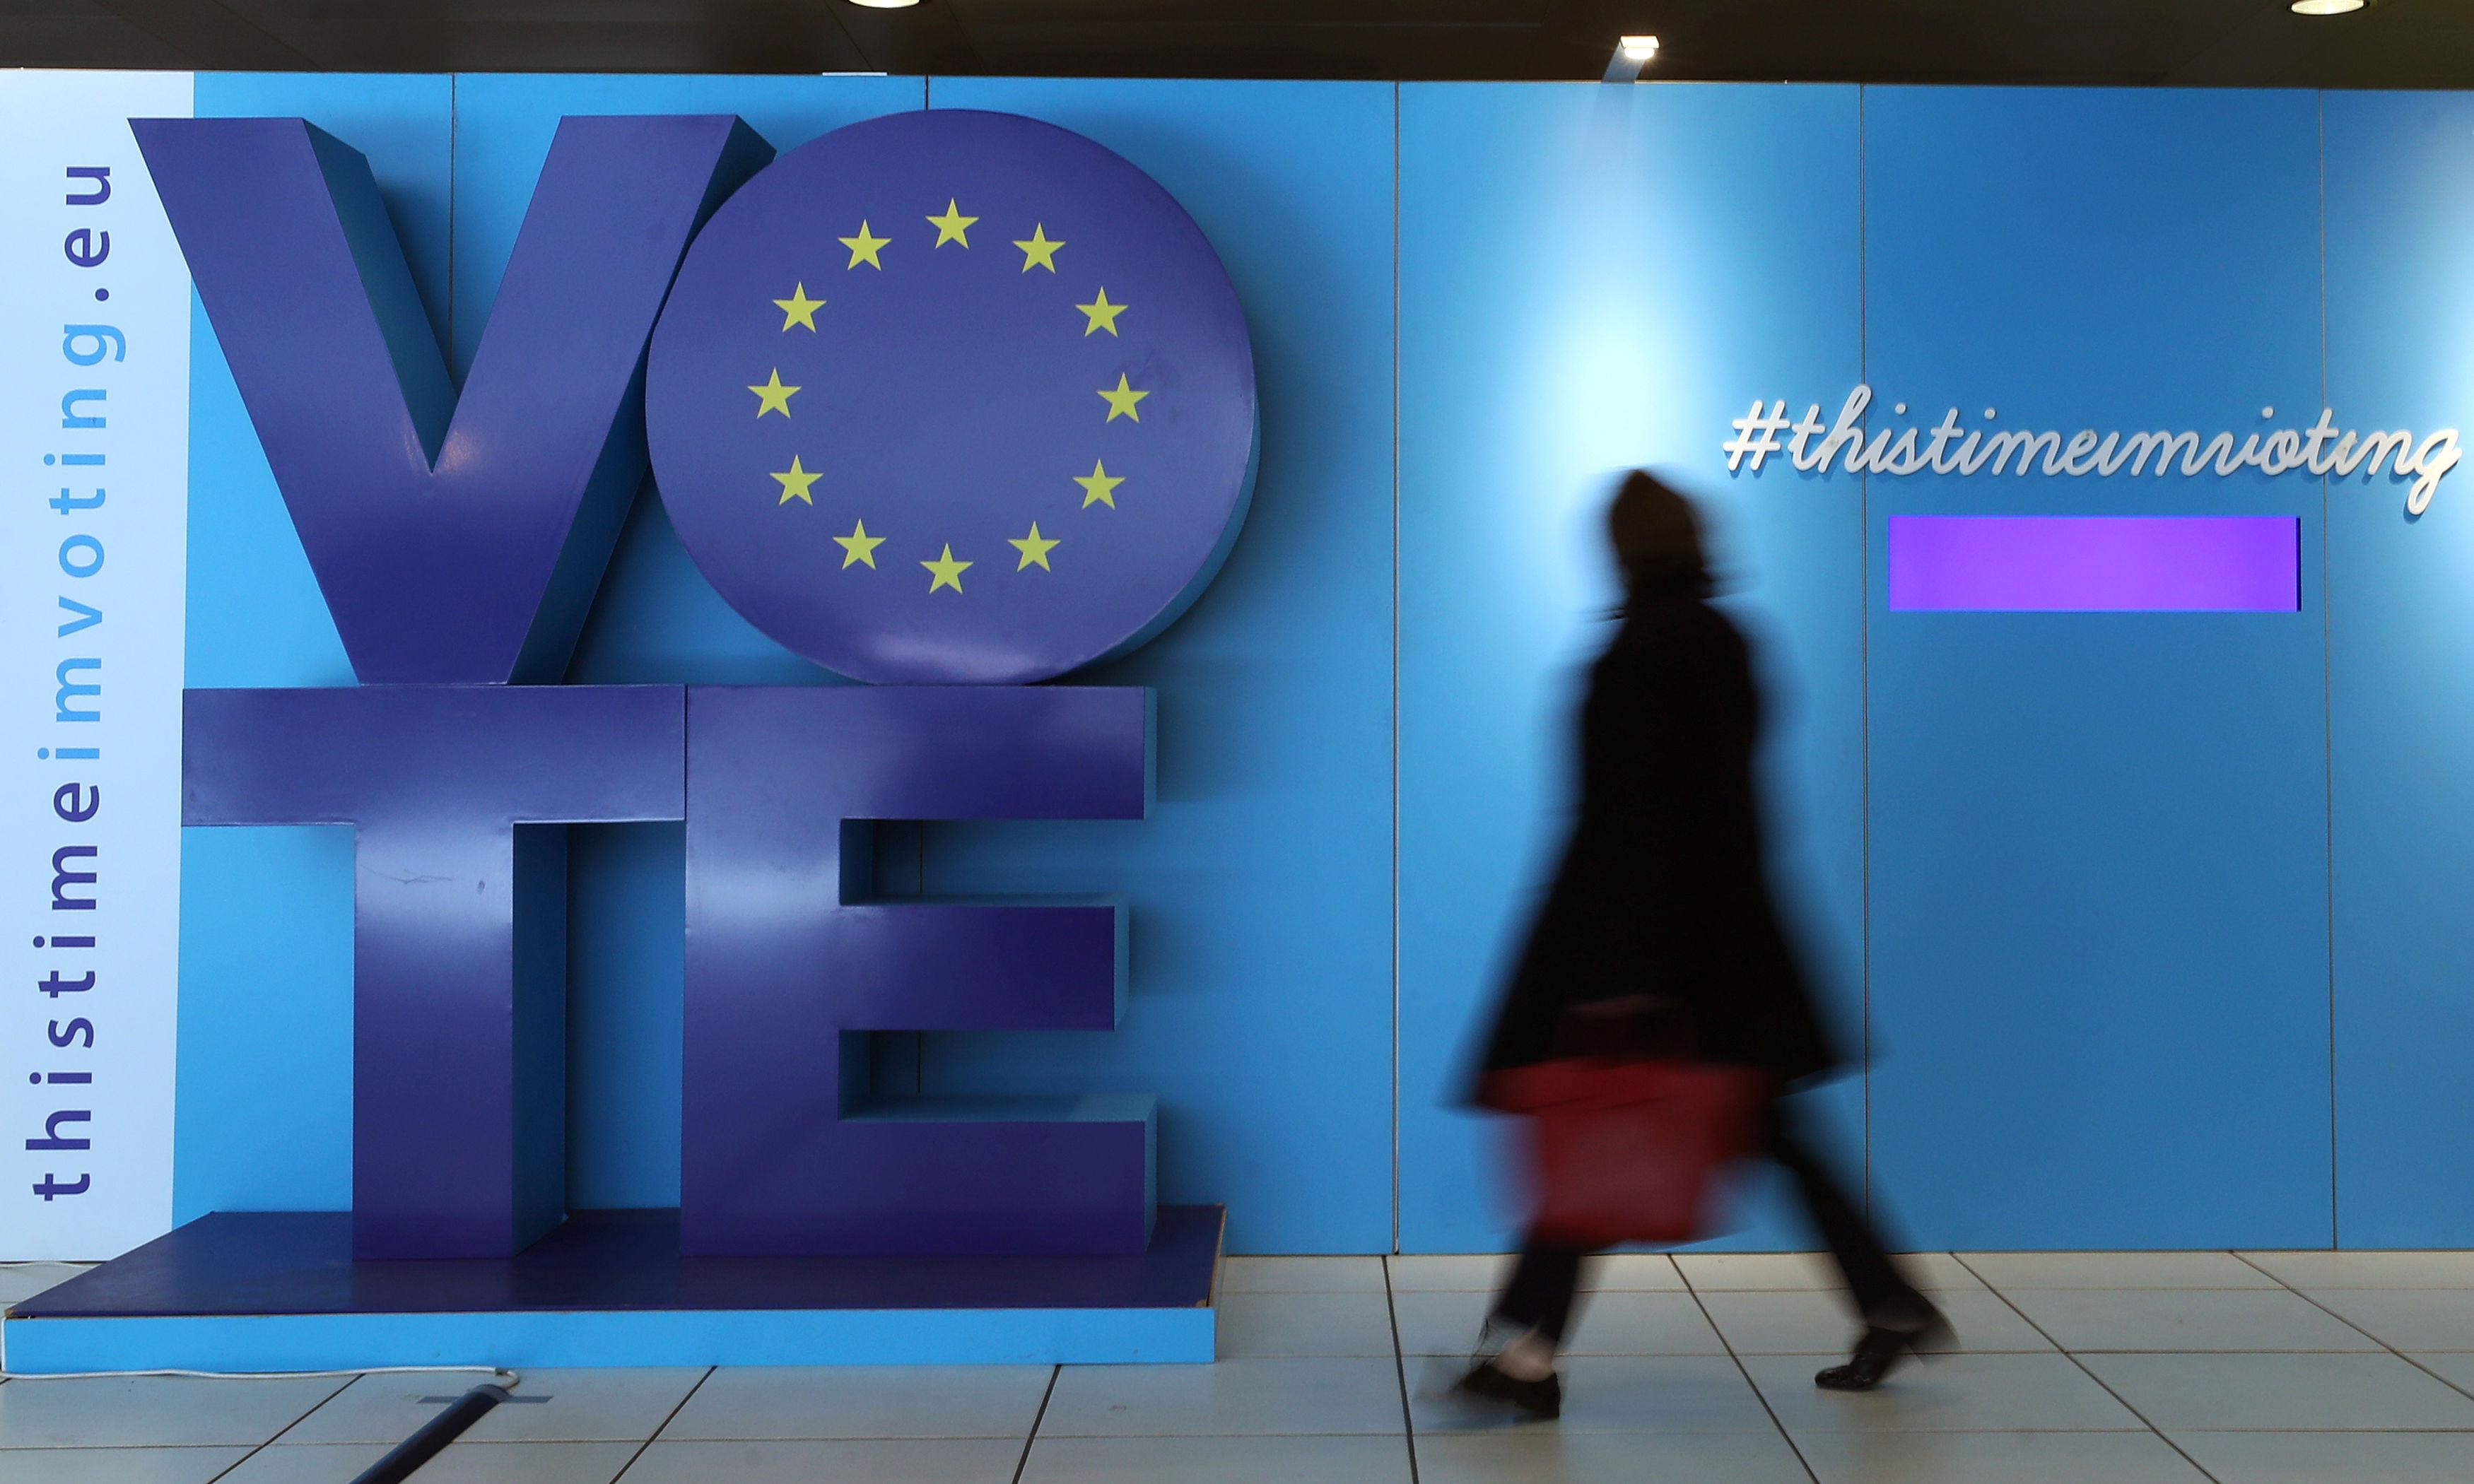 Choose your future: EU tries to raise turnout with viral campaign